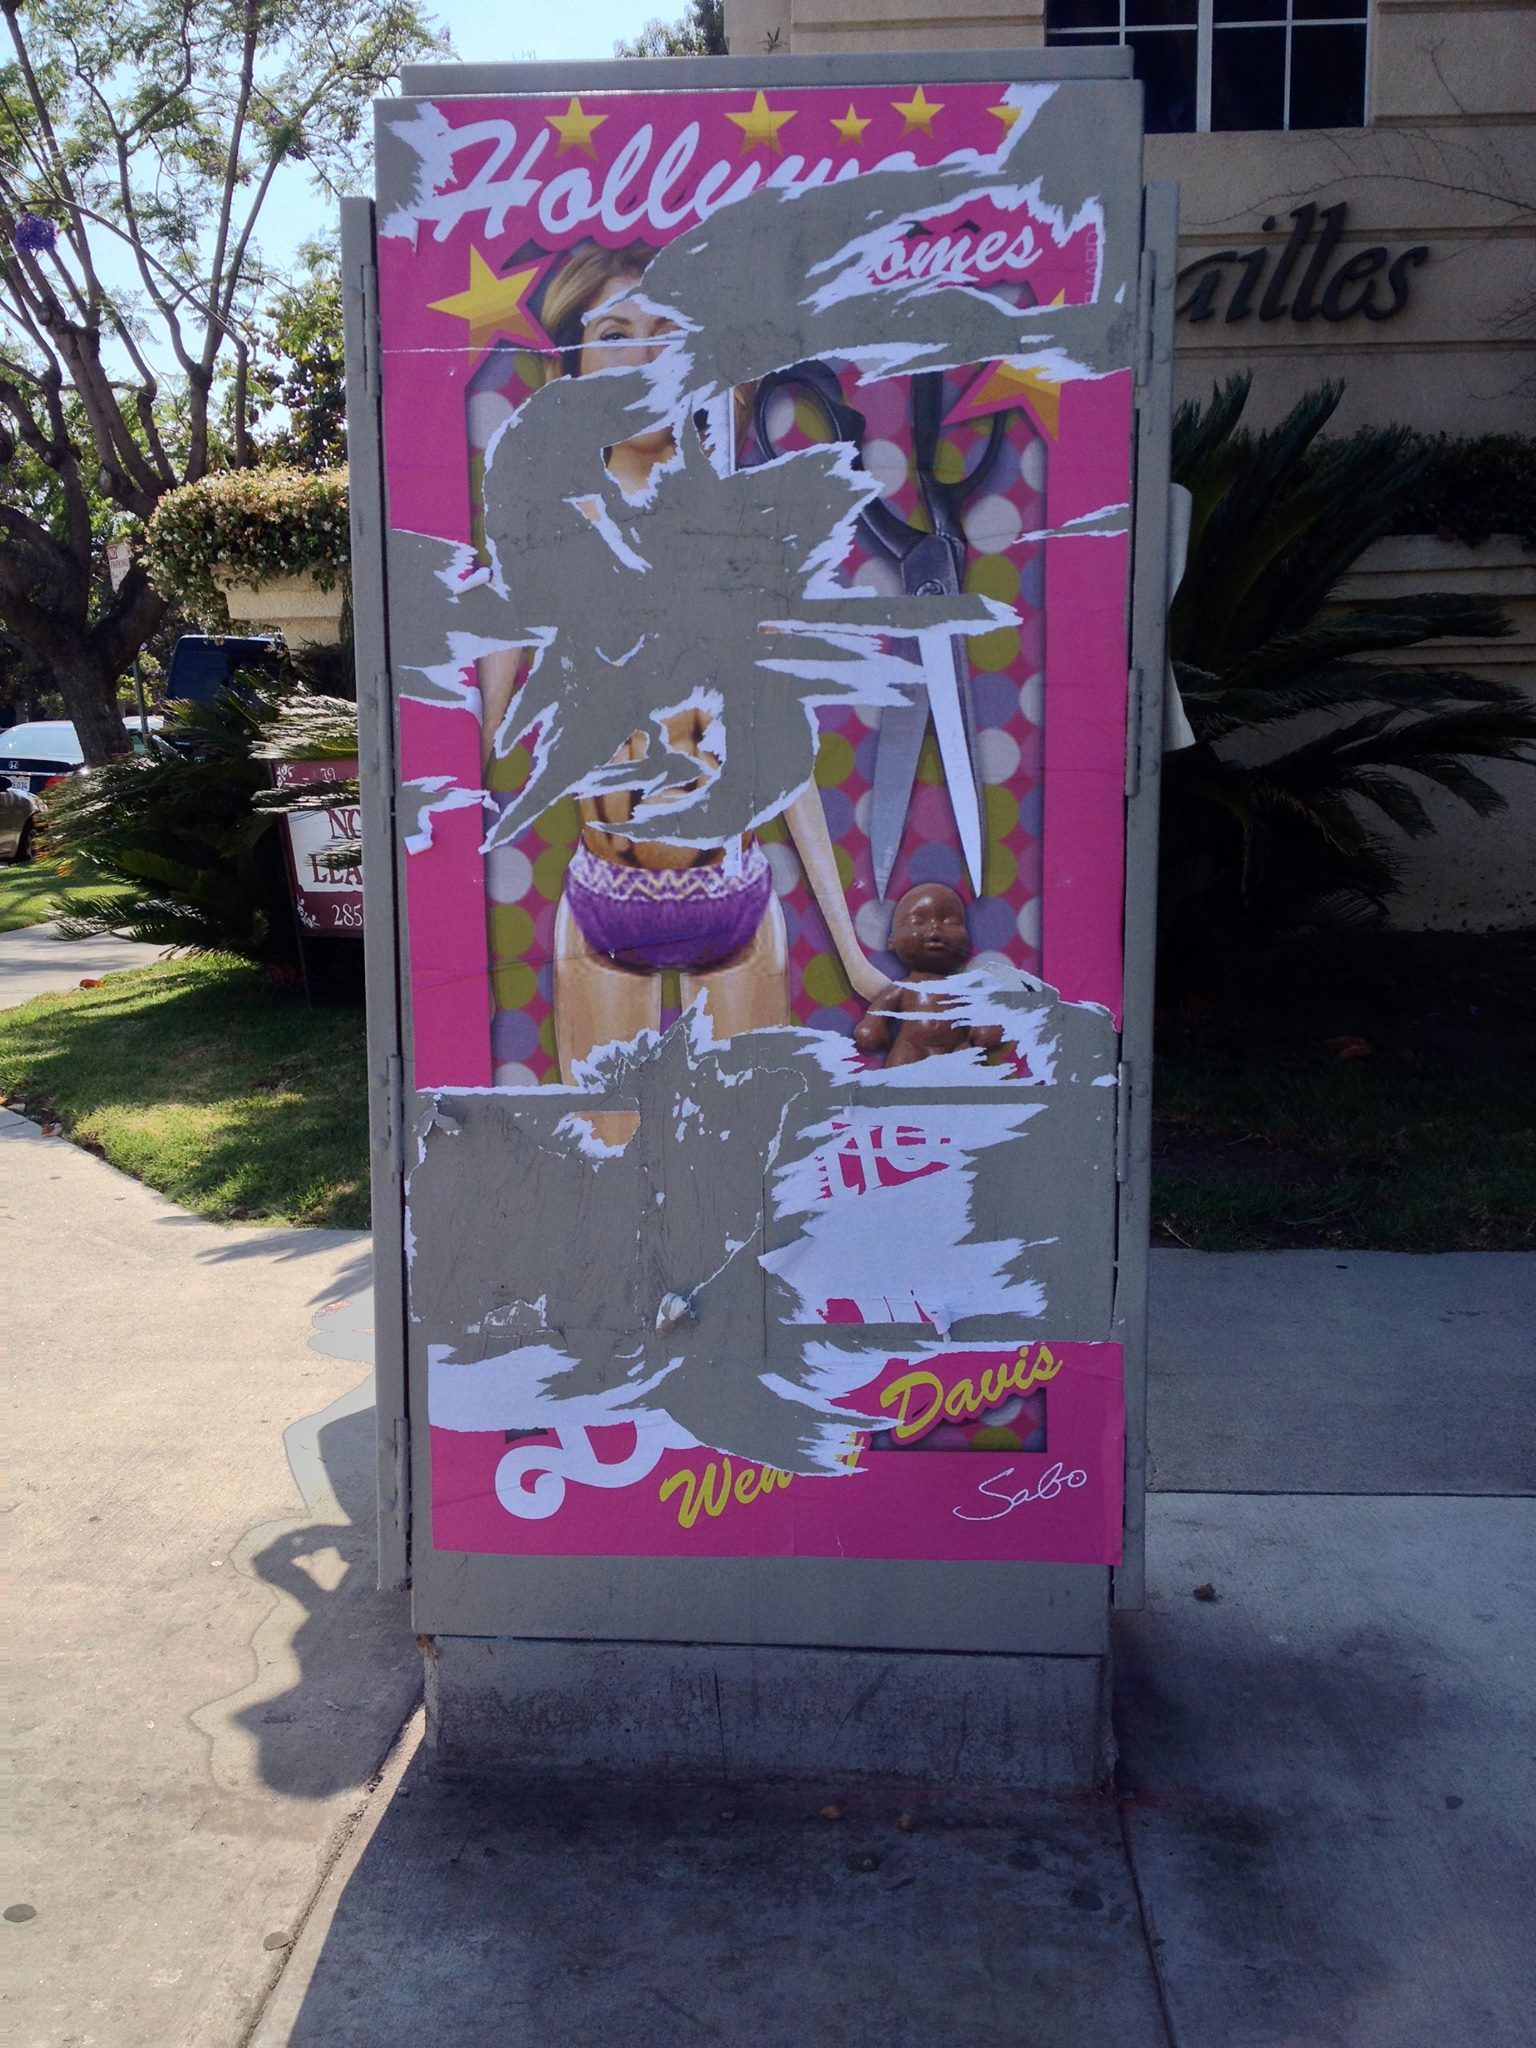 abortion barbie poster attack - HD1536×2048